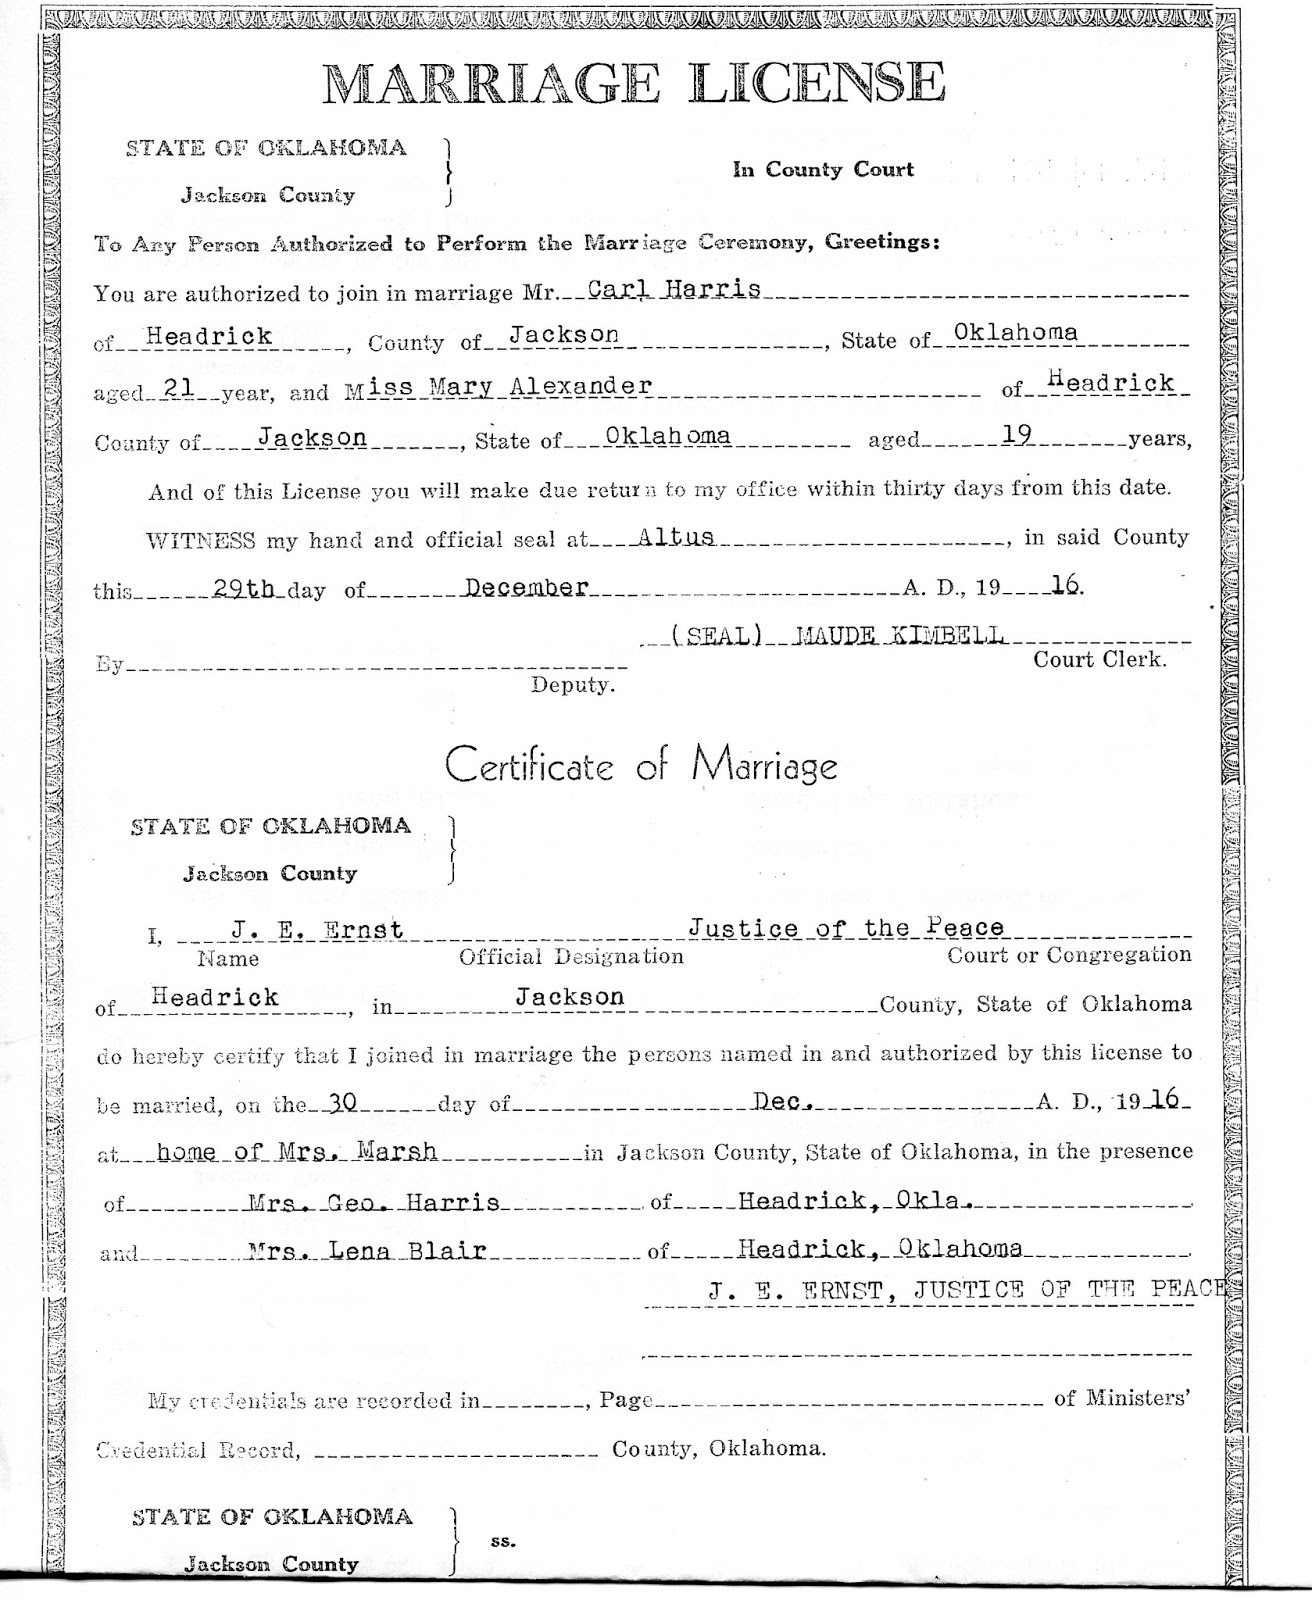 Mary marie harris of the people named on the certificate besides mary and carl the only one i recognize is mrs geo harris that would be annie harris carls step mother 1betcityfo Images